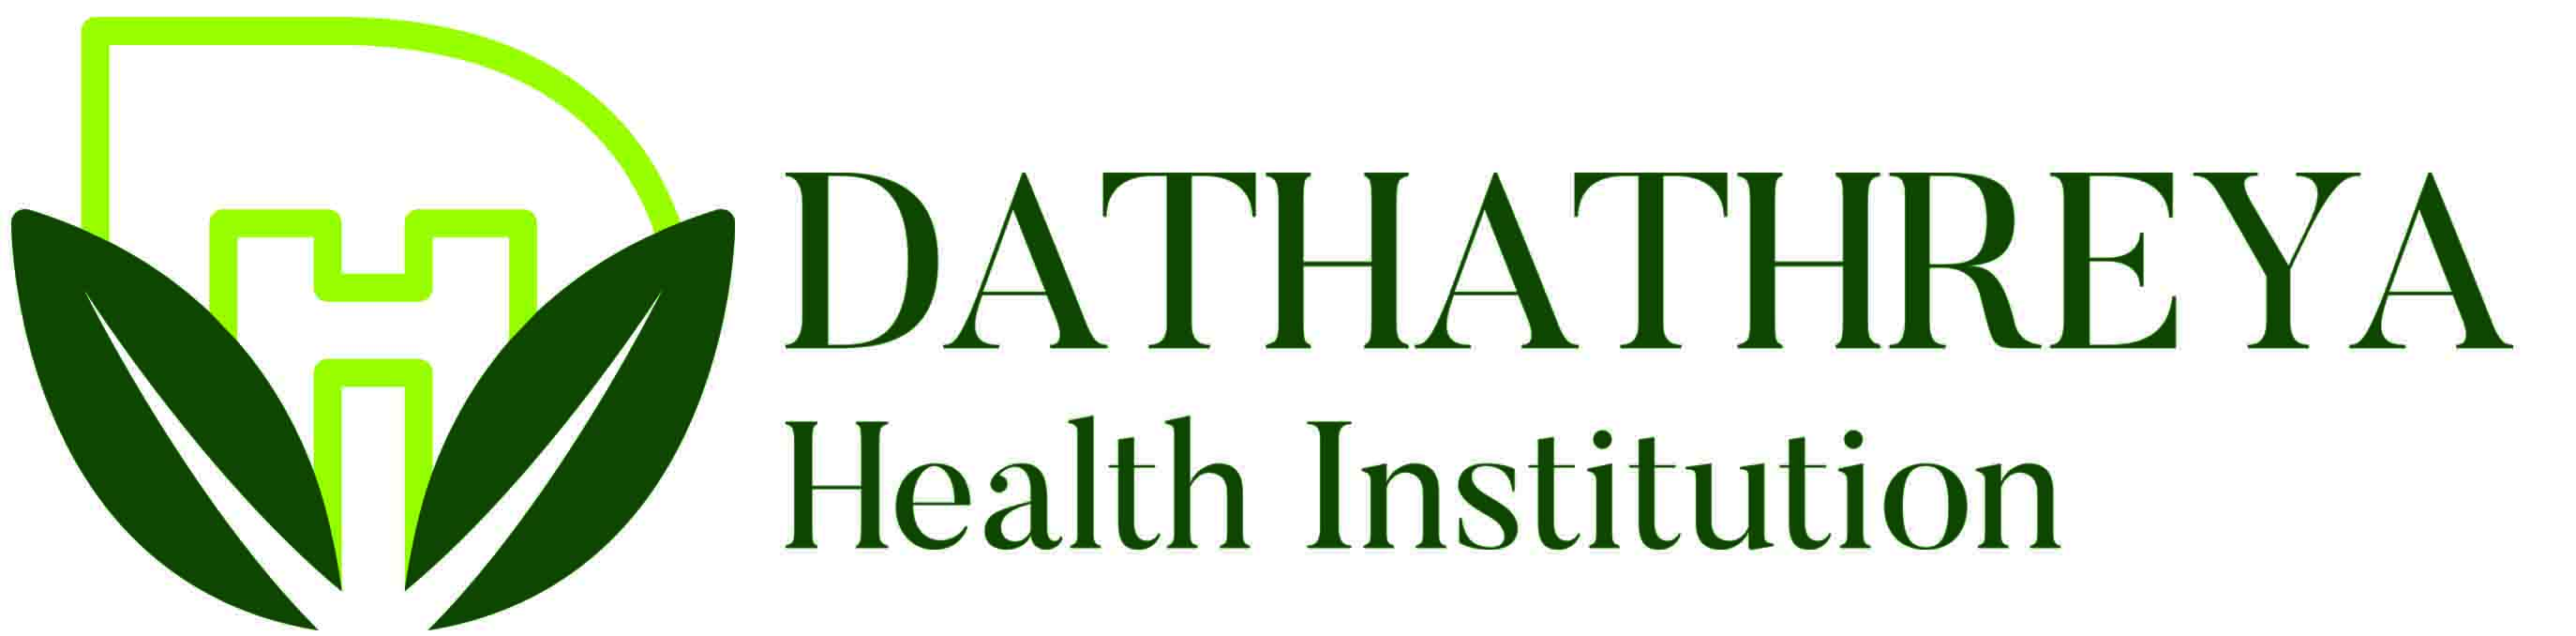 Dathathreya Health Institution for Public Health